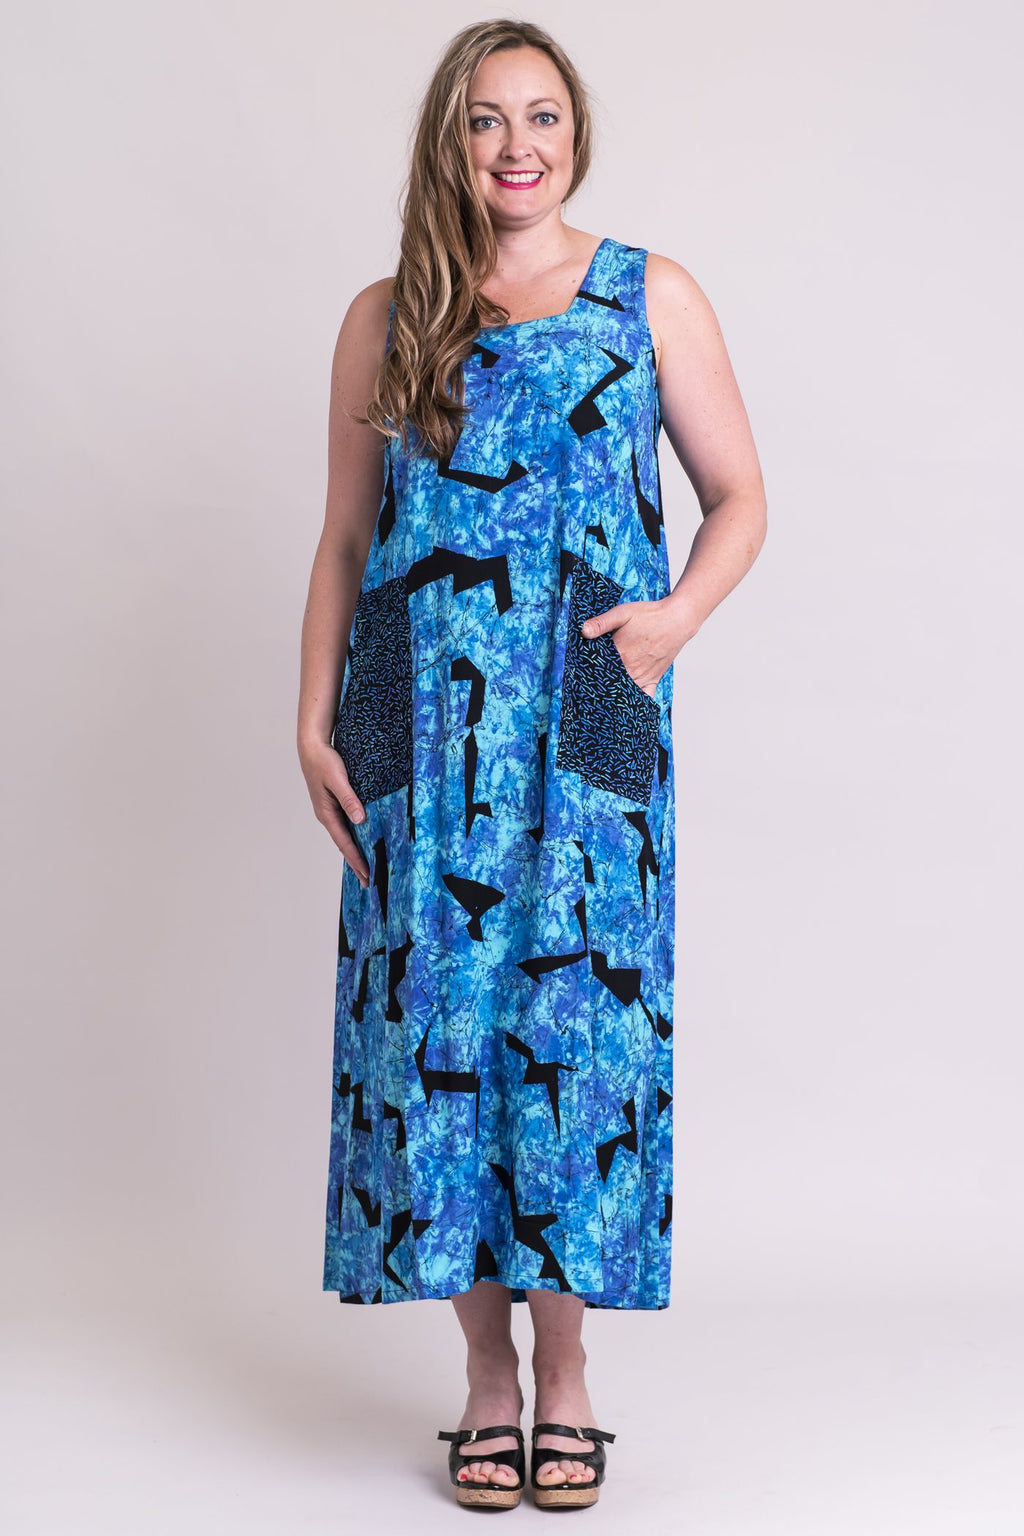 Maddie Dress, Mosaic, Batik Art - Blue Sky Clothing Co